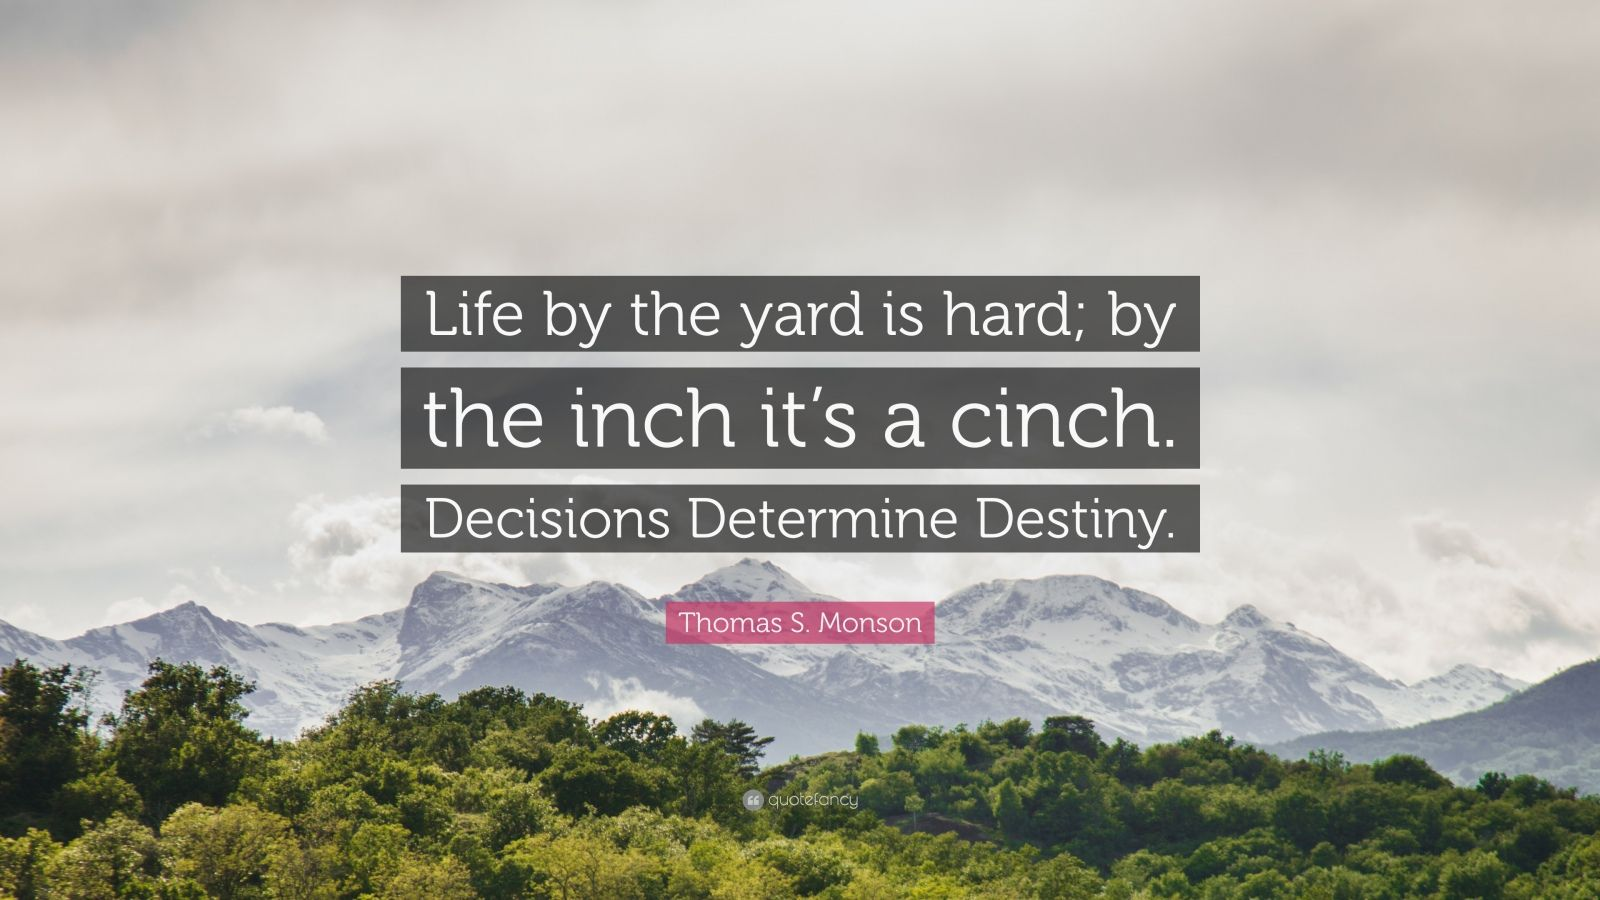 """Thomas S. Monson Quote: """"Life by the yard is hard; by the inch it's a cinch. Decisions Determine Destiny."""""""